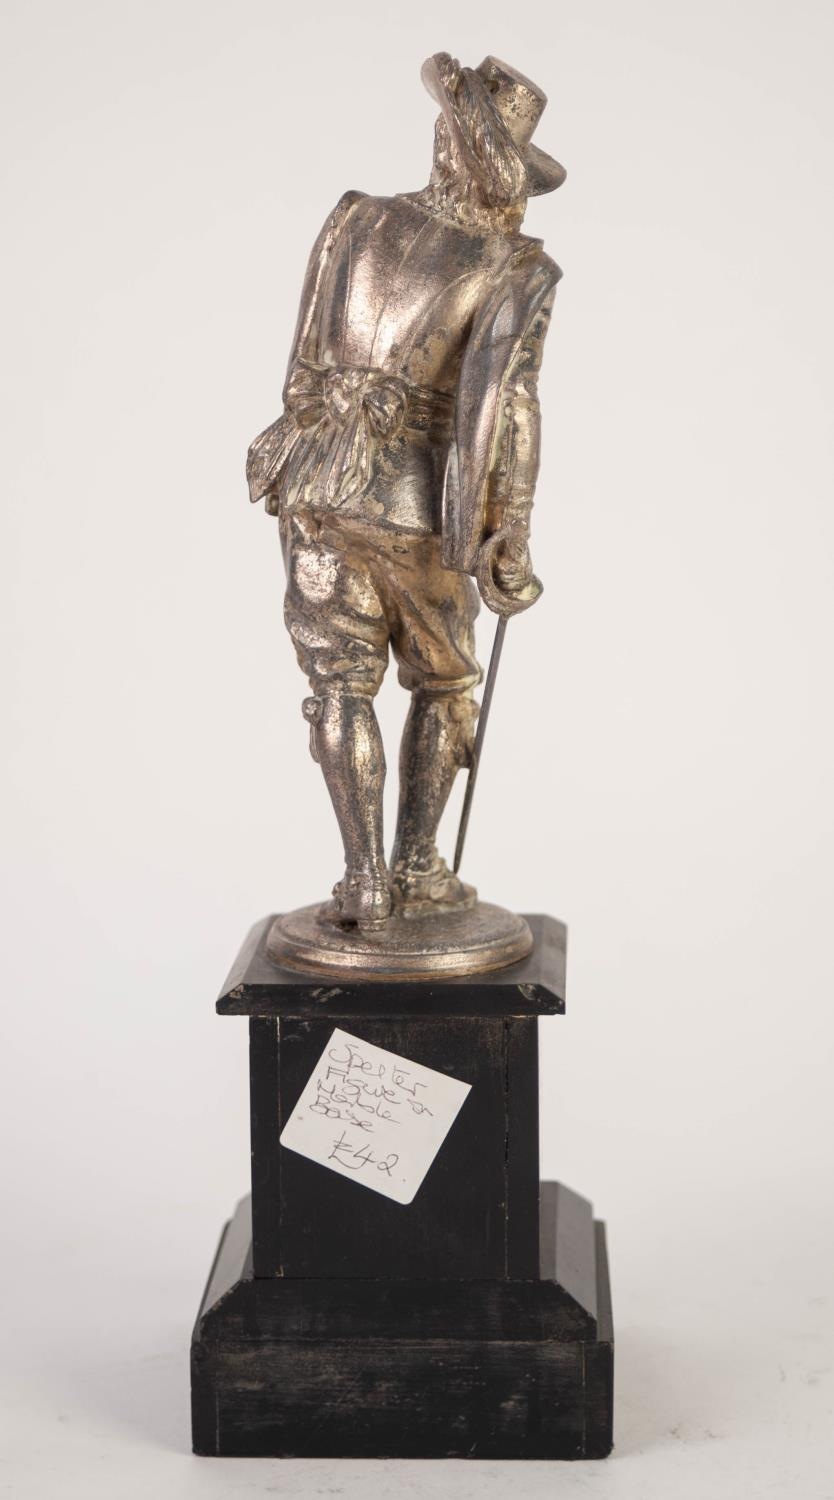 Lot 239 - LATE 19th CENTURY PLATED SPELTER FIGURE OF A BEARDED CAVALIER WITH PLUMED HAT AND SWORD on a black